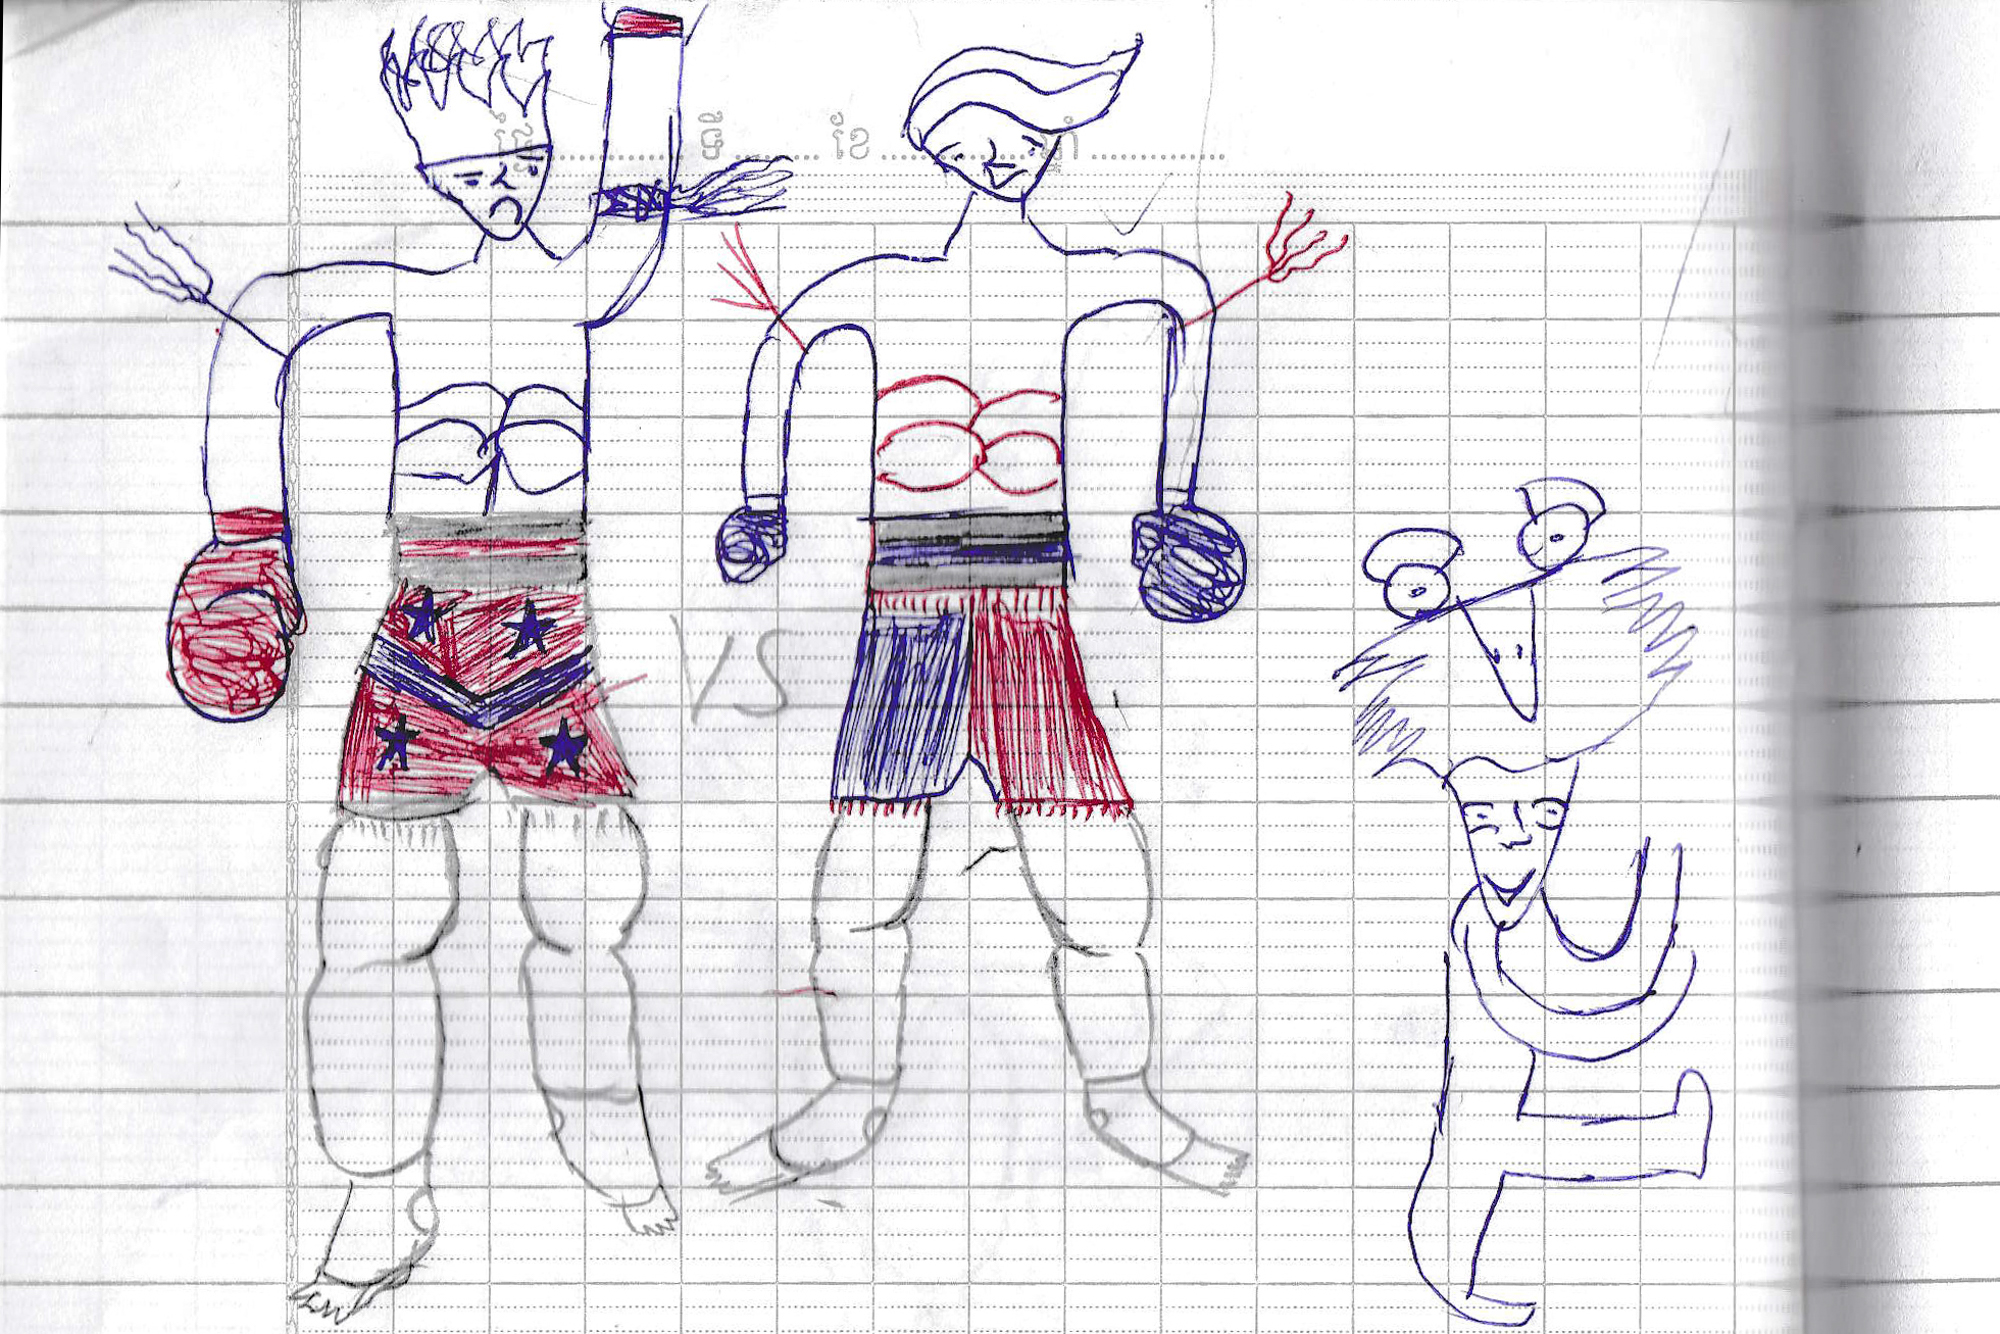 Drawings by Khim Dimey, a Cambodian child boxer. He draws strong characters with boxing gloves.